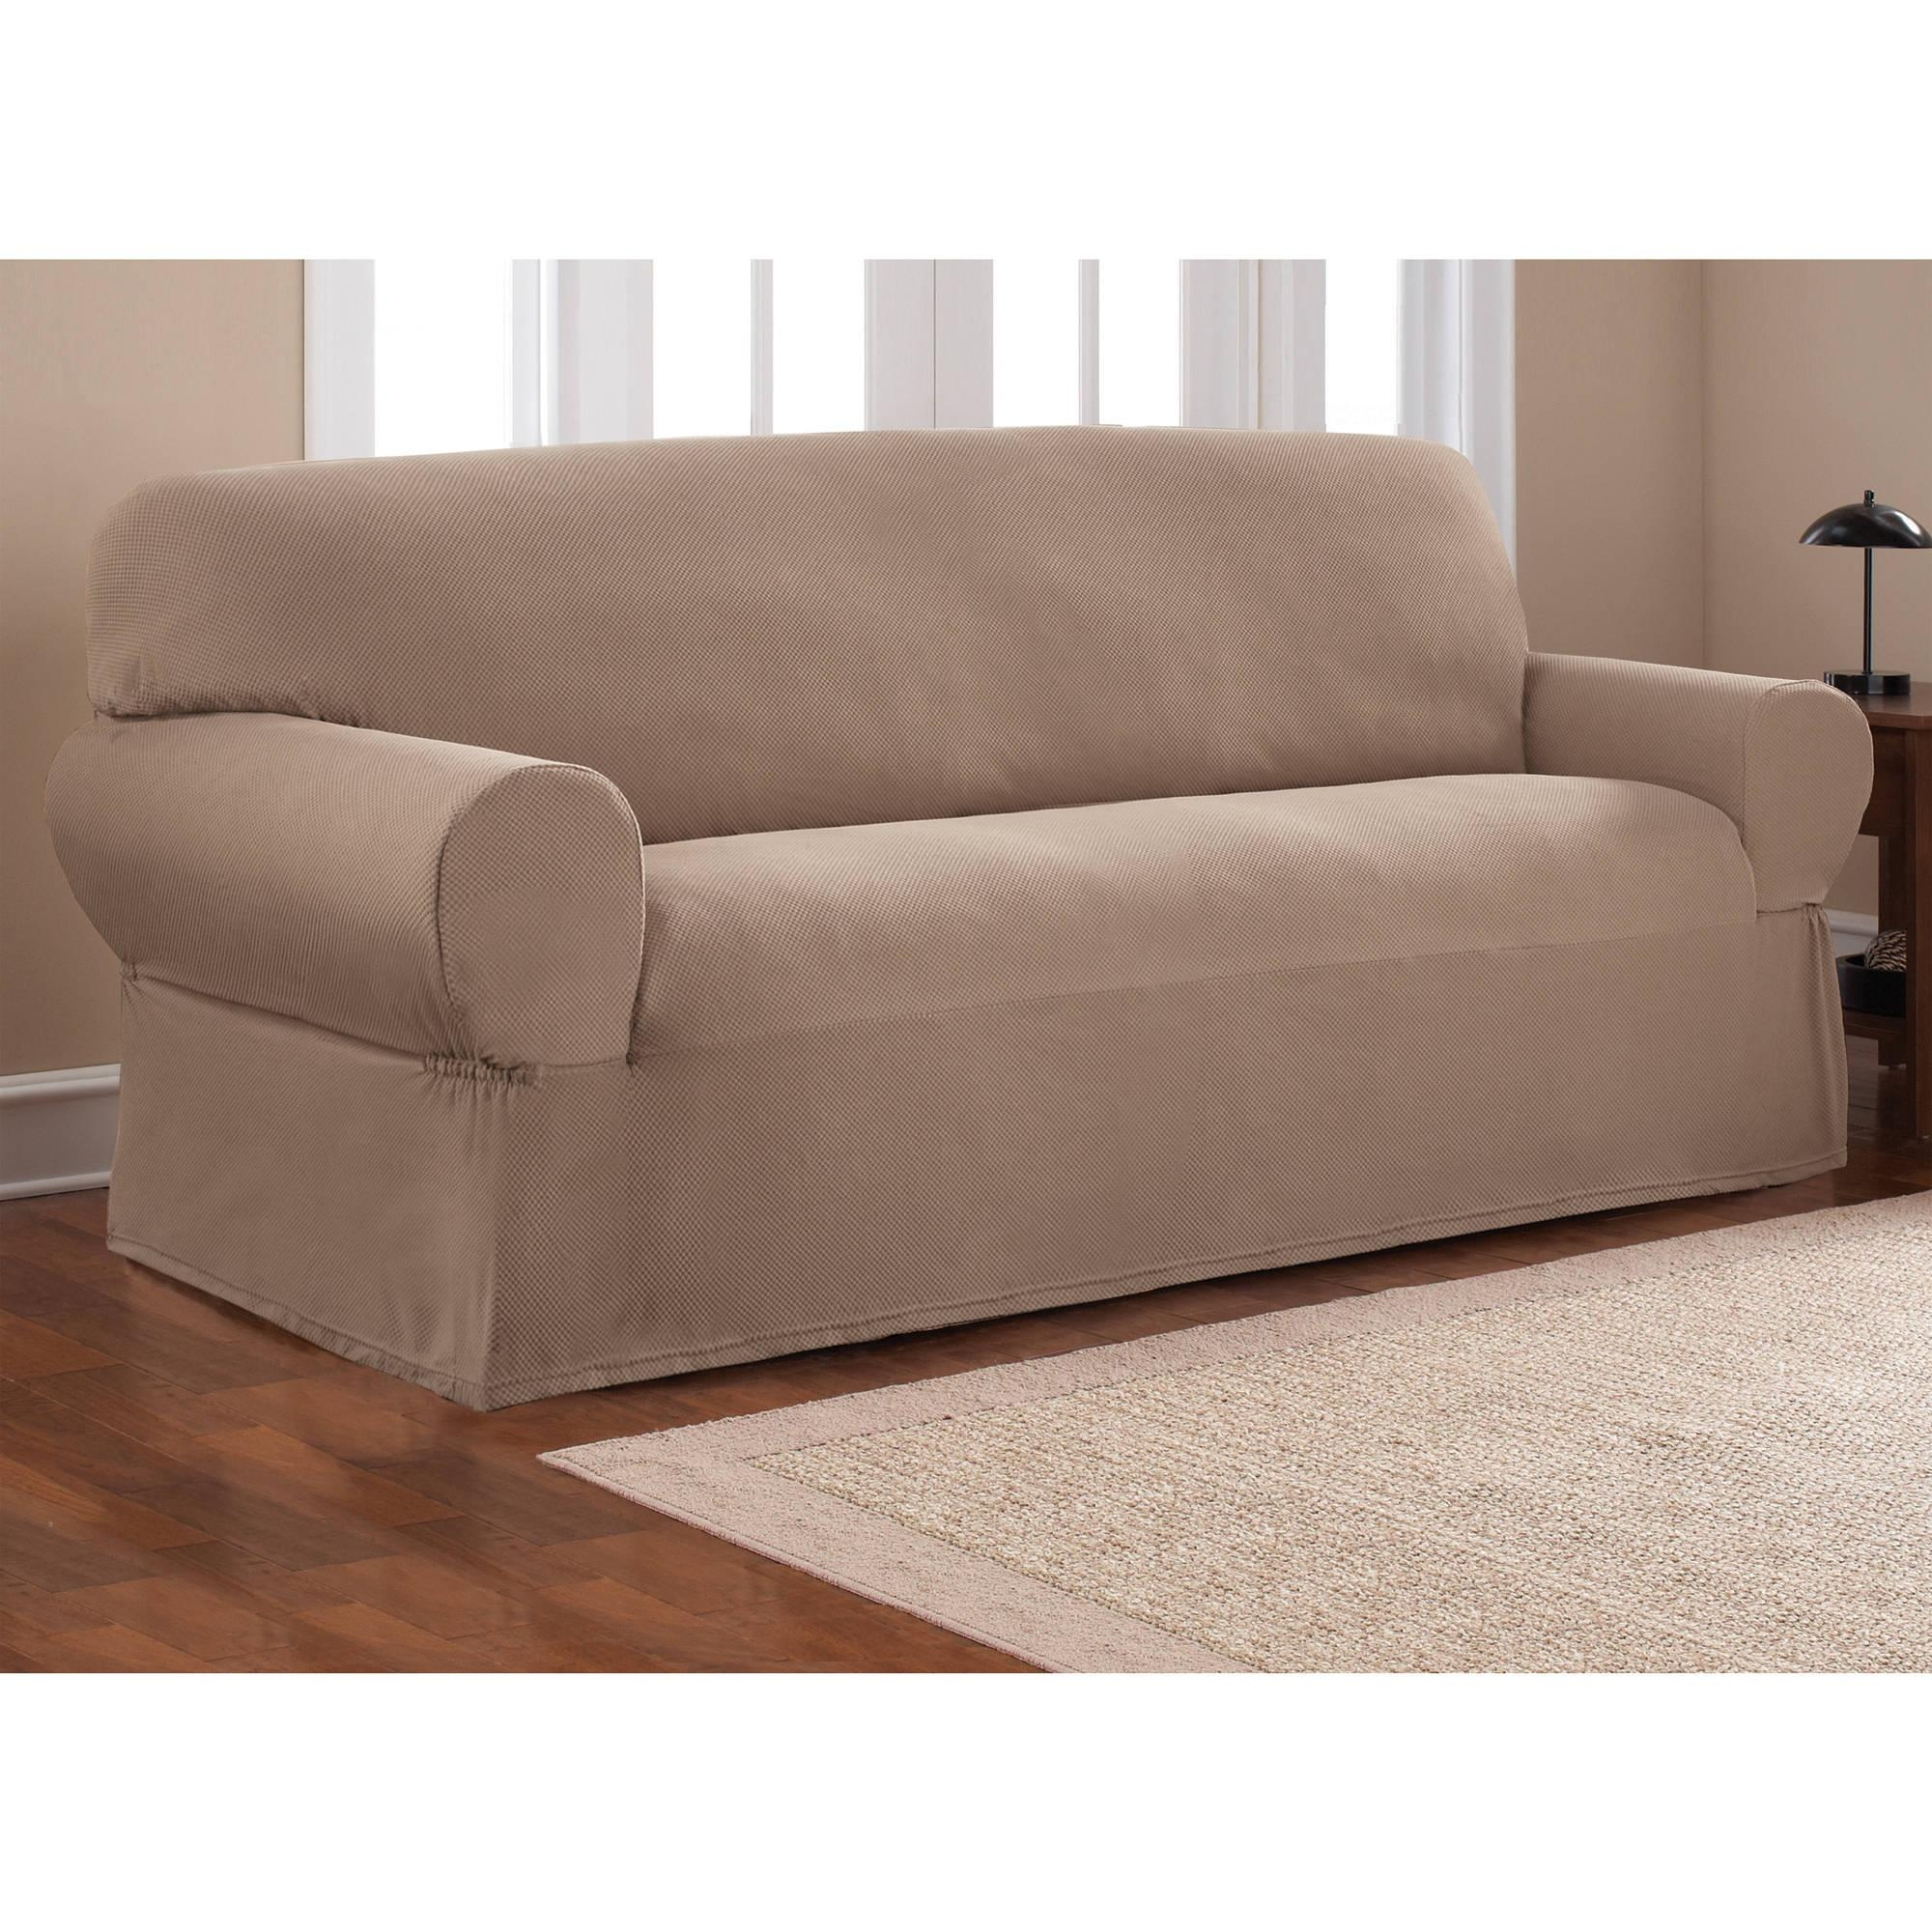 Mainstays 1 Piece Stretch Fabric Sofa Slipcover – Walmart Intended For 3 Piece Sofa Slipcovers (Image 14 of 20)